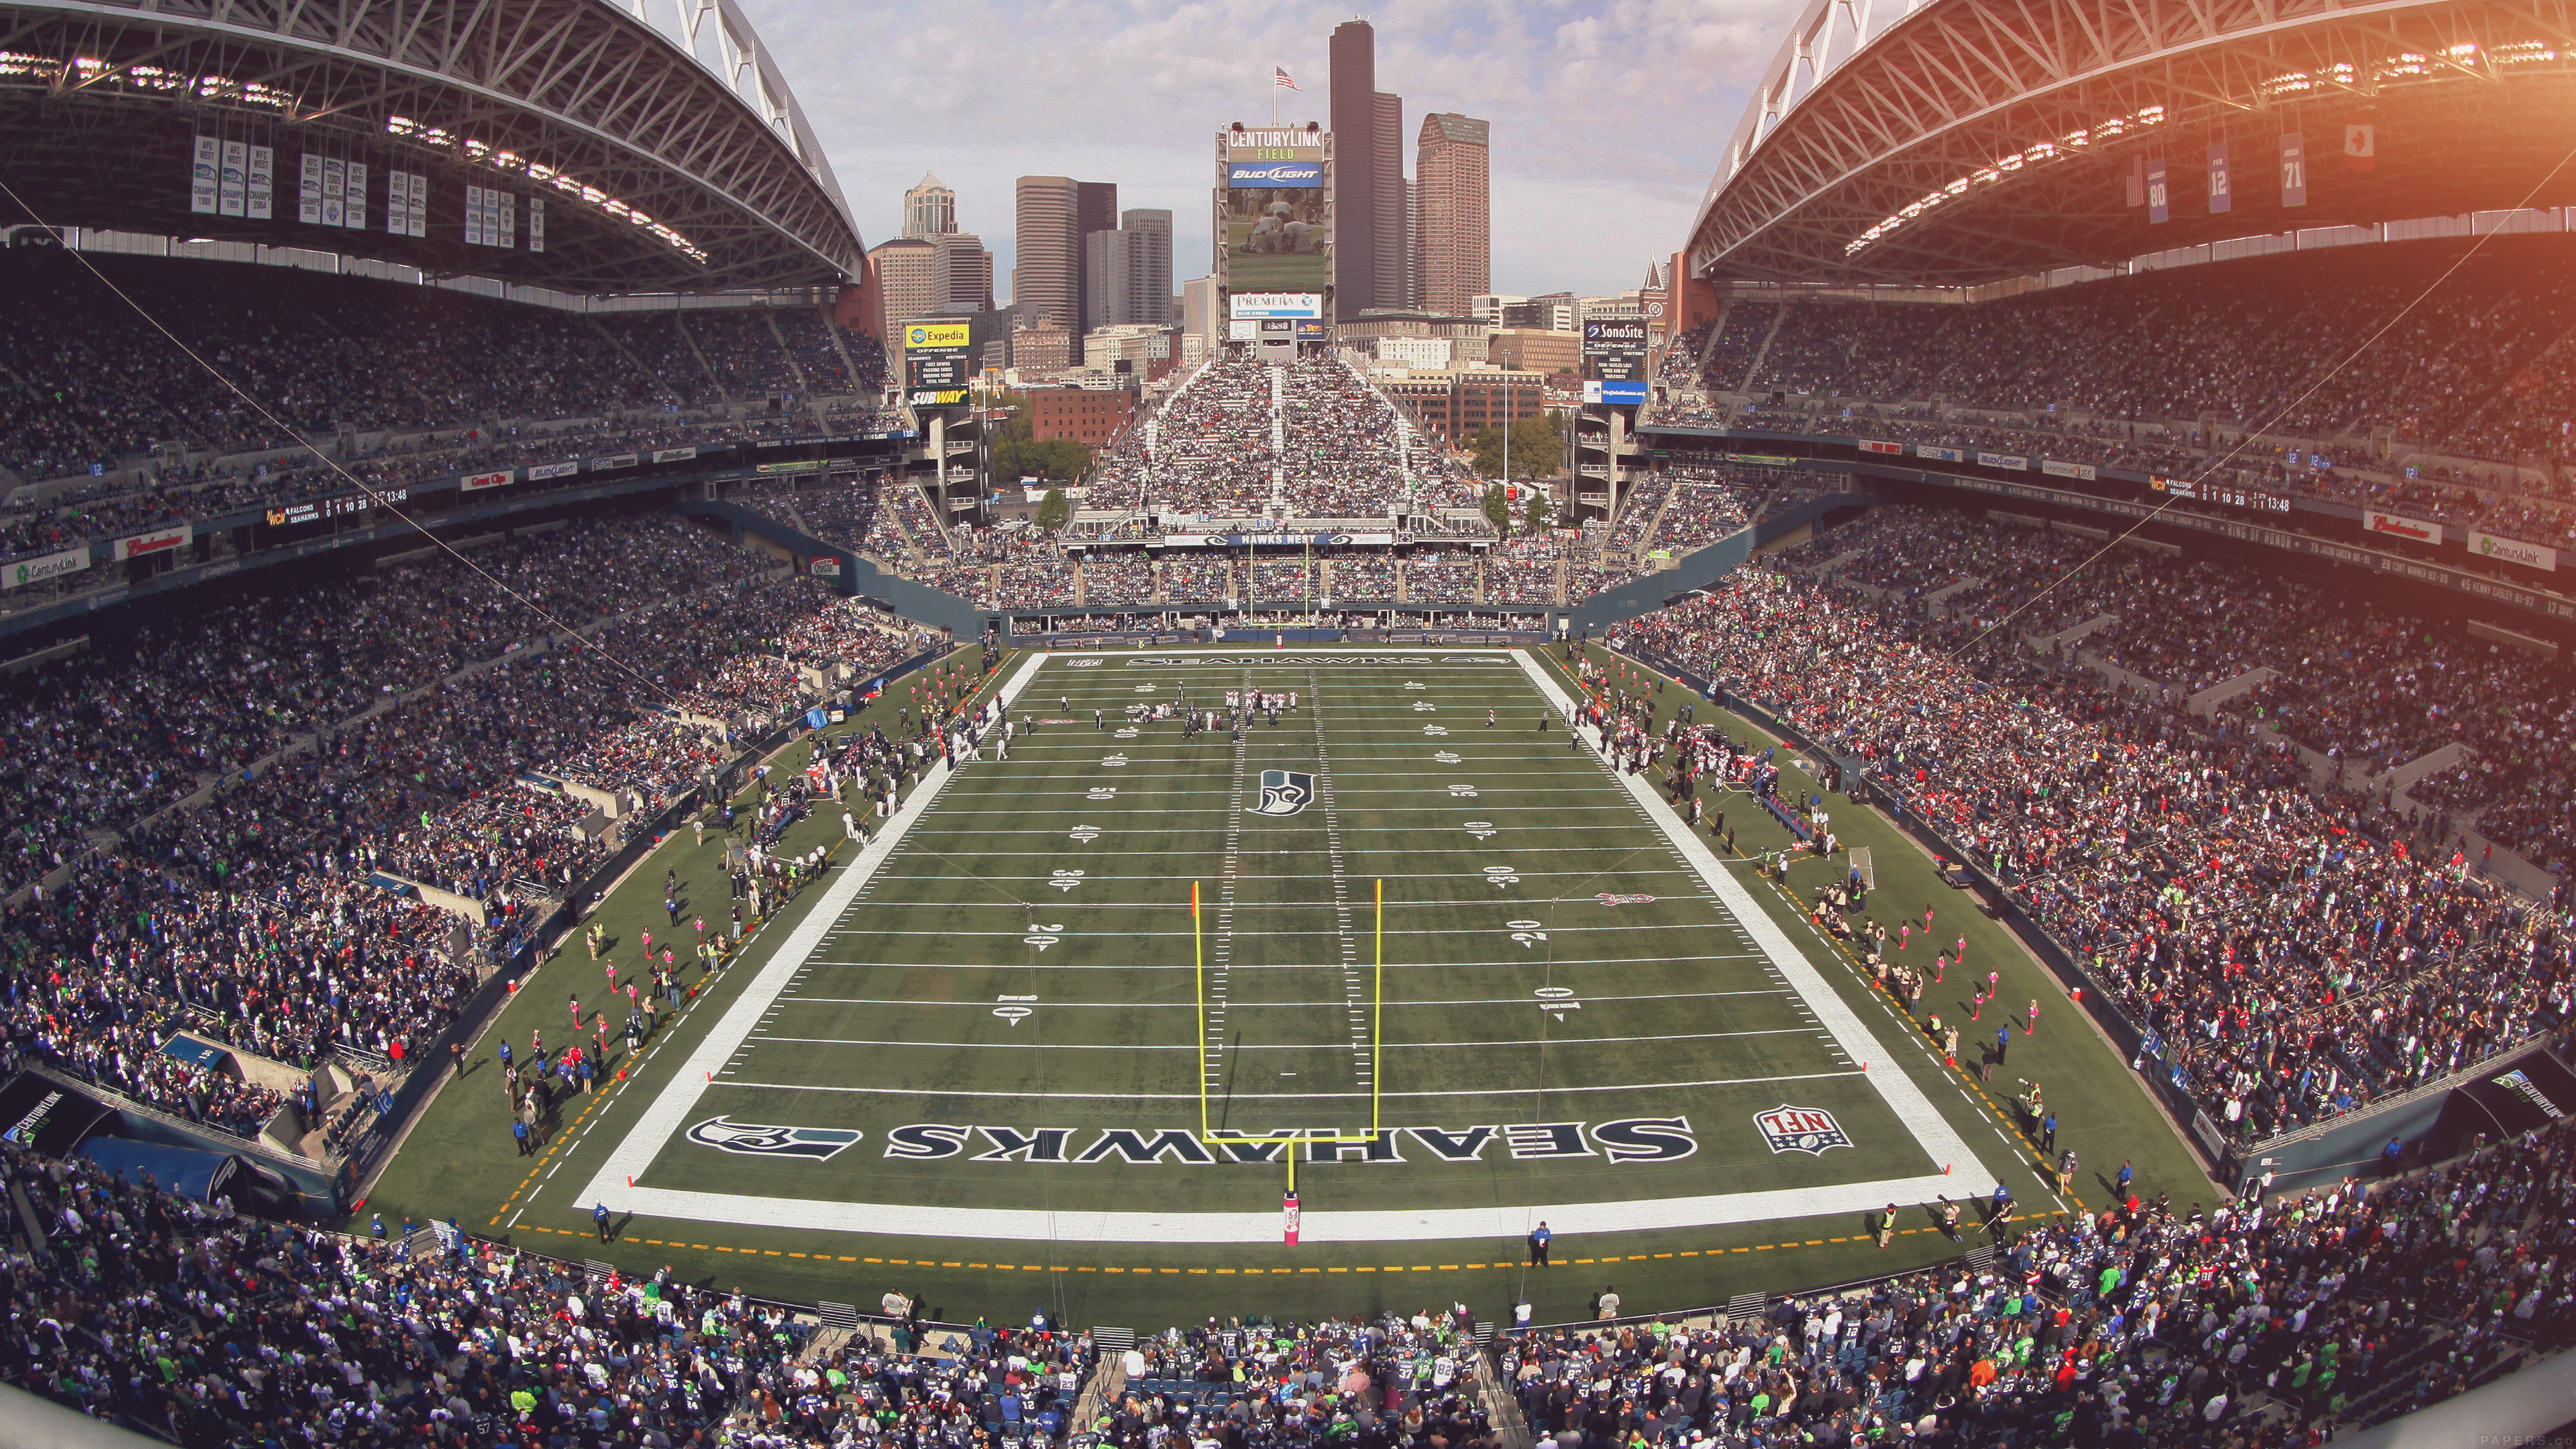 Fall Wallpaper For Macbook Air Mp98 Seahawks Seattle Sports Stadium Football Nfl Papers Co